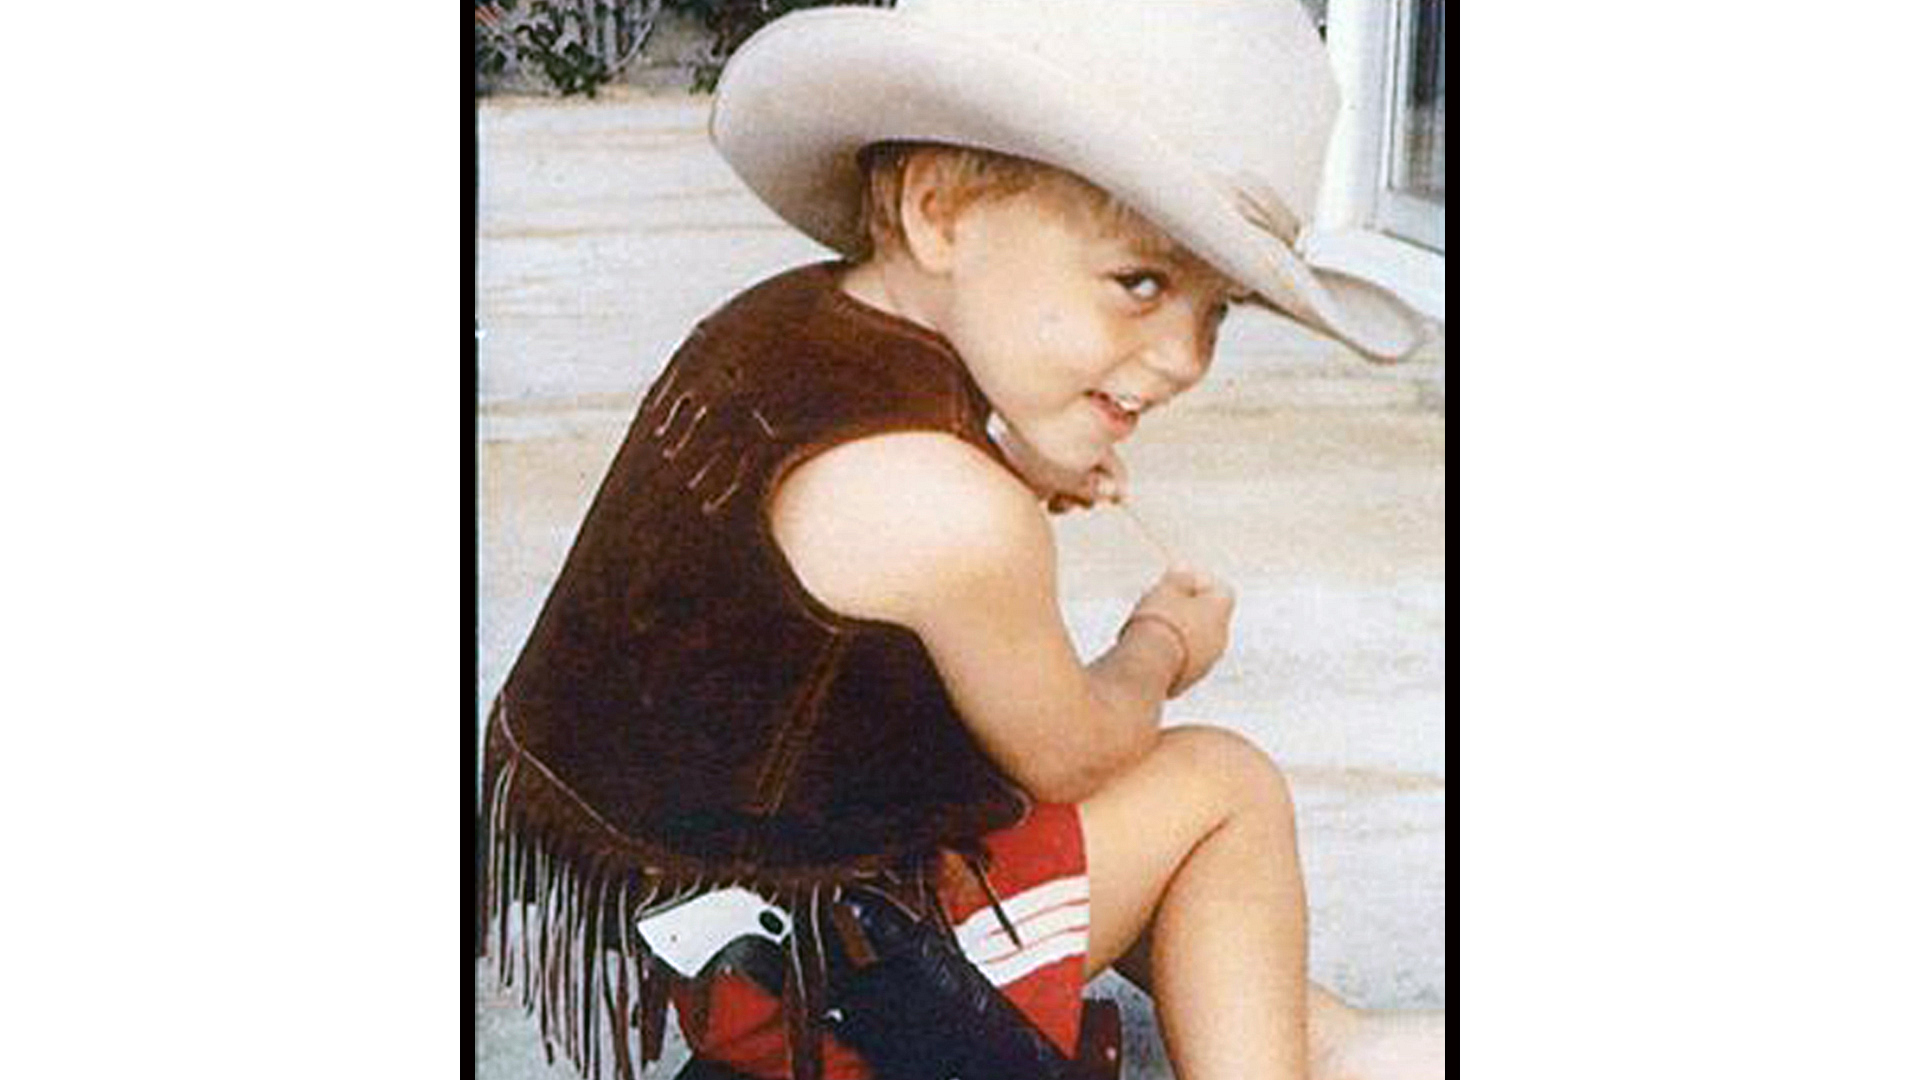 Yee-haw! Darin Brooks was quite the cute little cowboy.